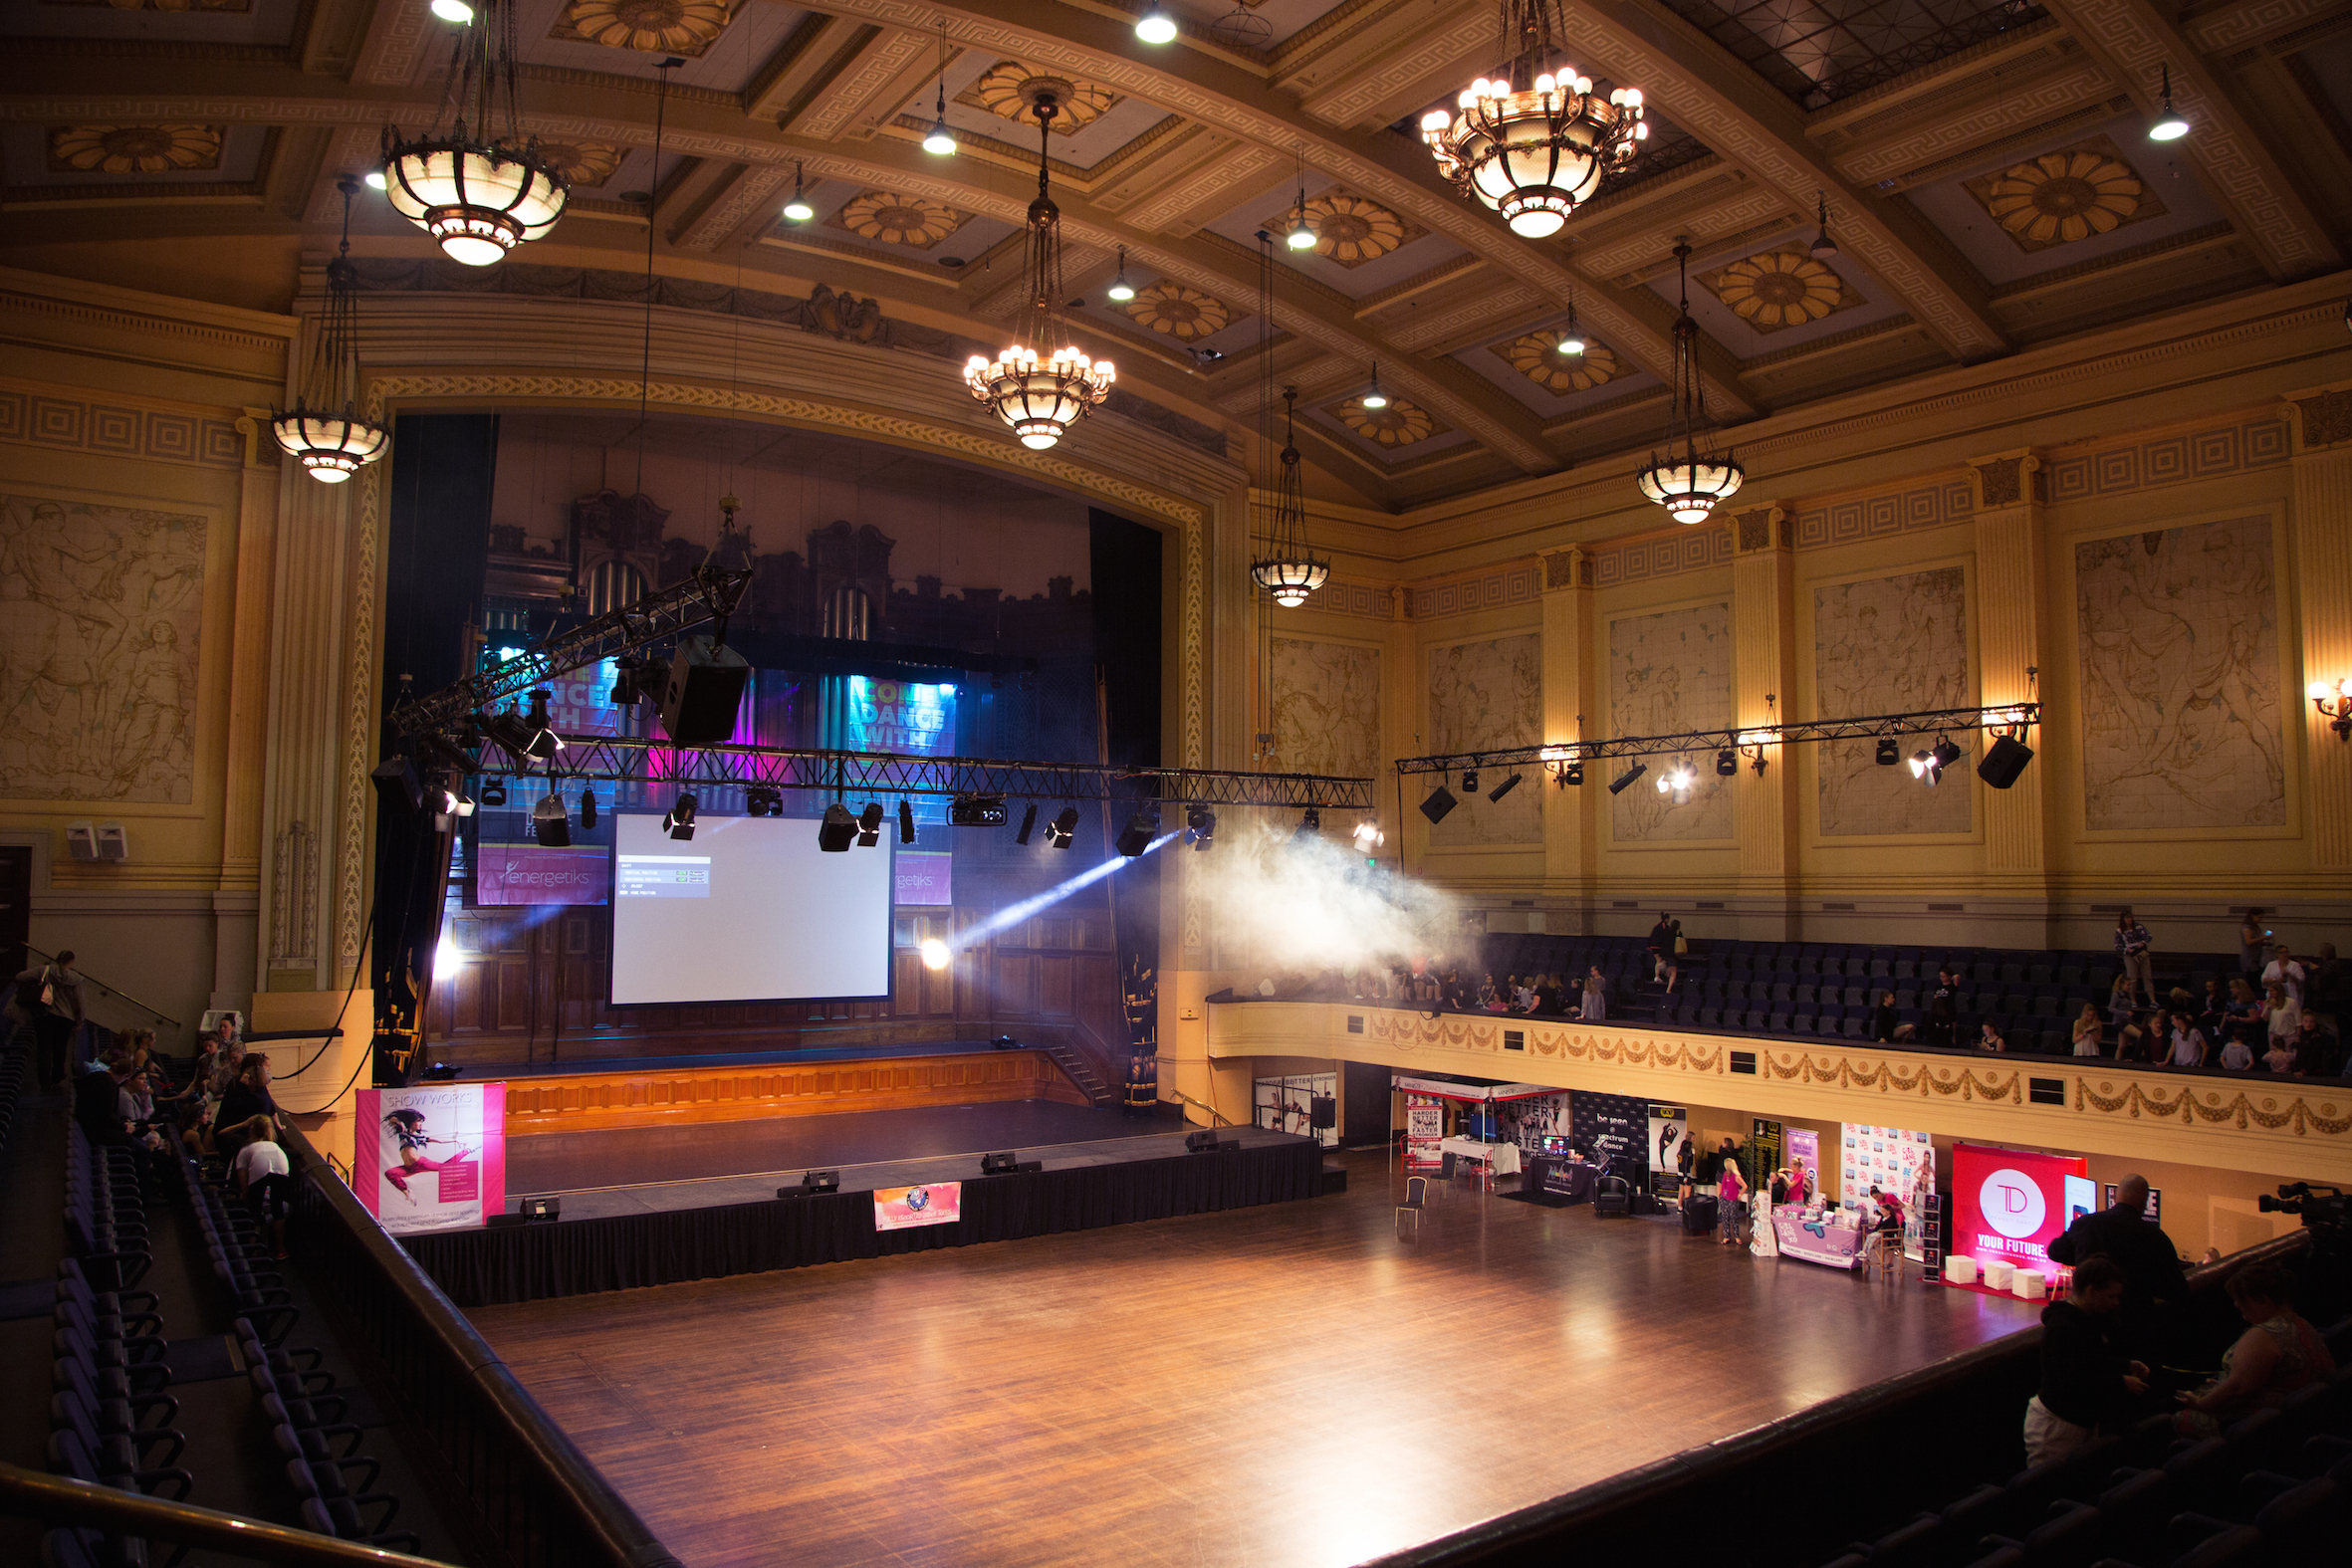 The venue: VDF's Dancefloor and stage for 2017 - The Melbourne Town Hall